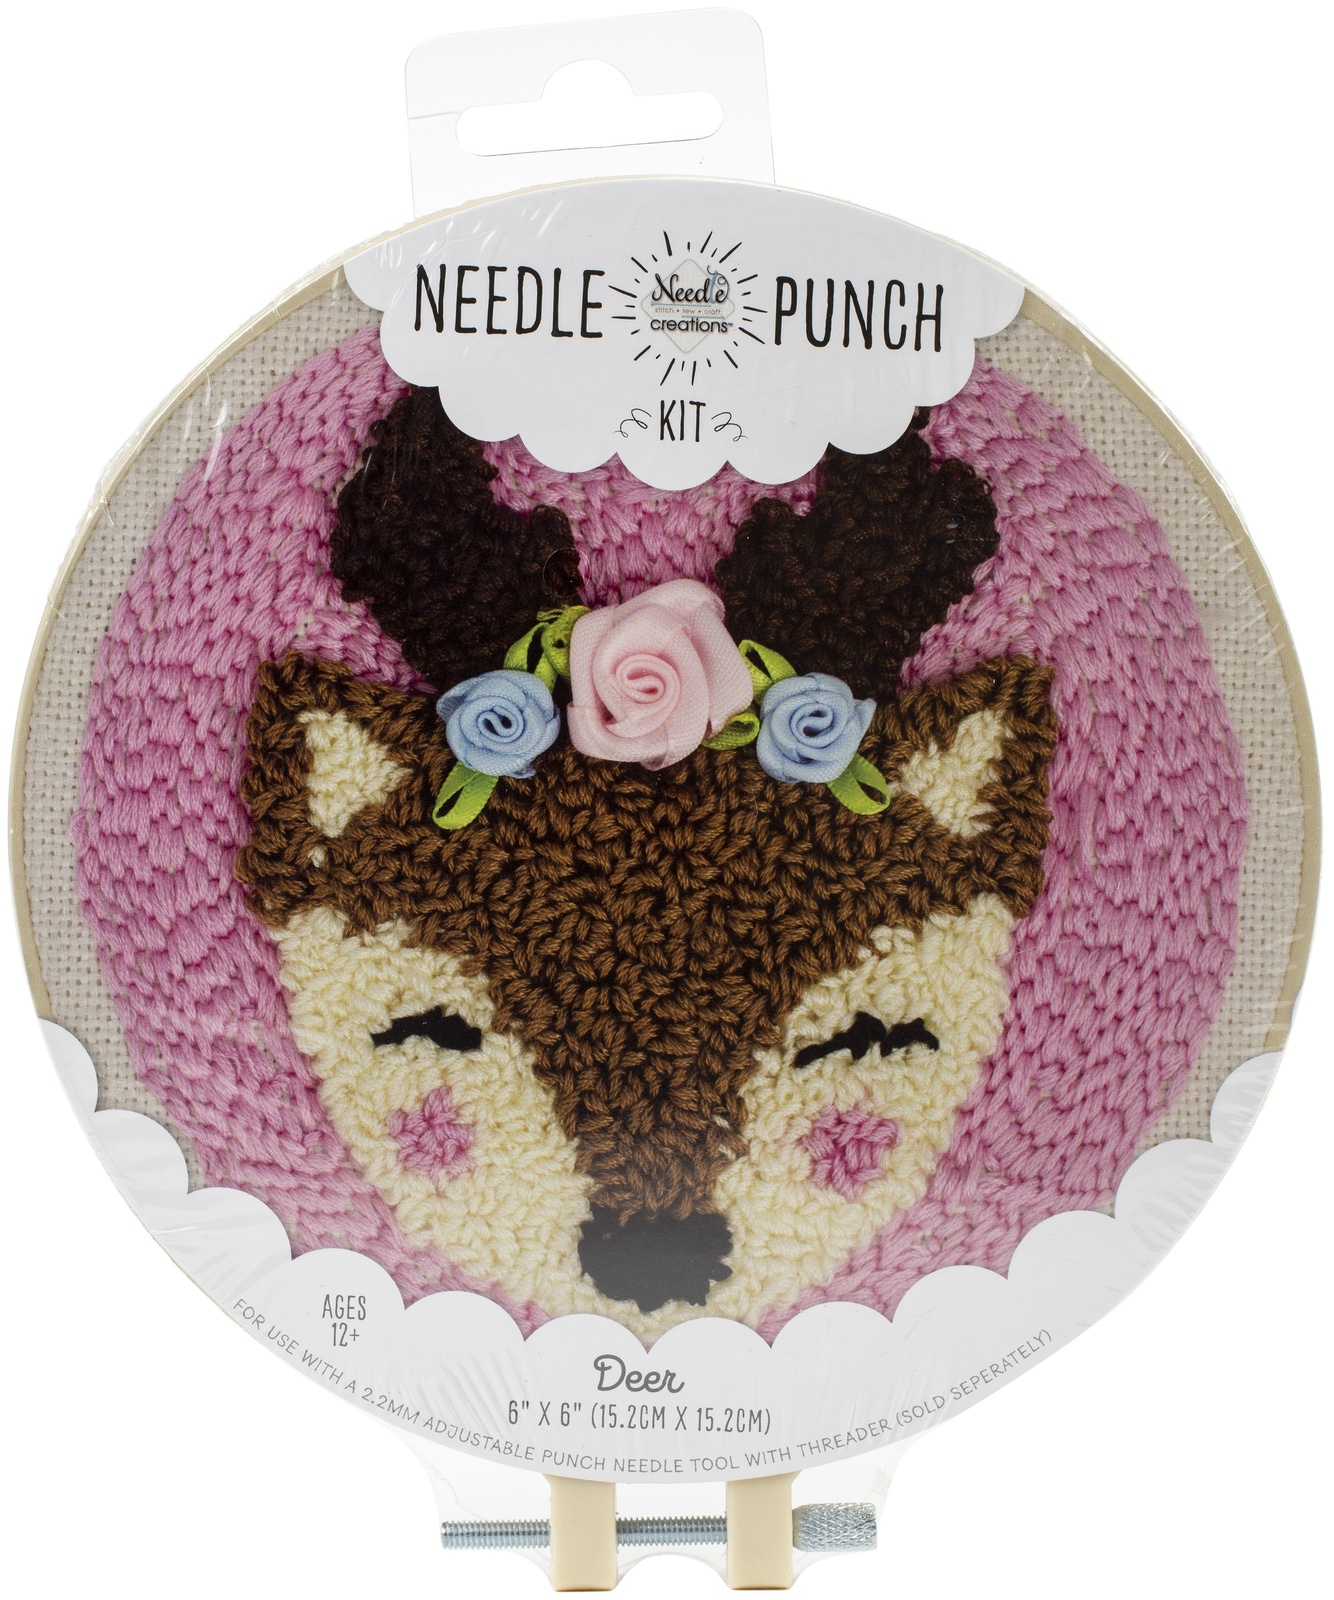 "Fabric Editions Needle Creations Needle Punch Kit 6""-Deer - $16.36"